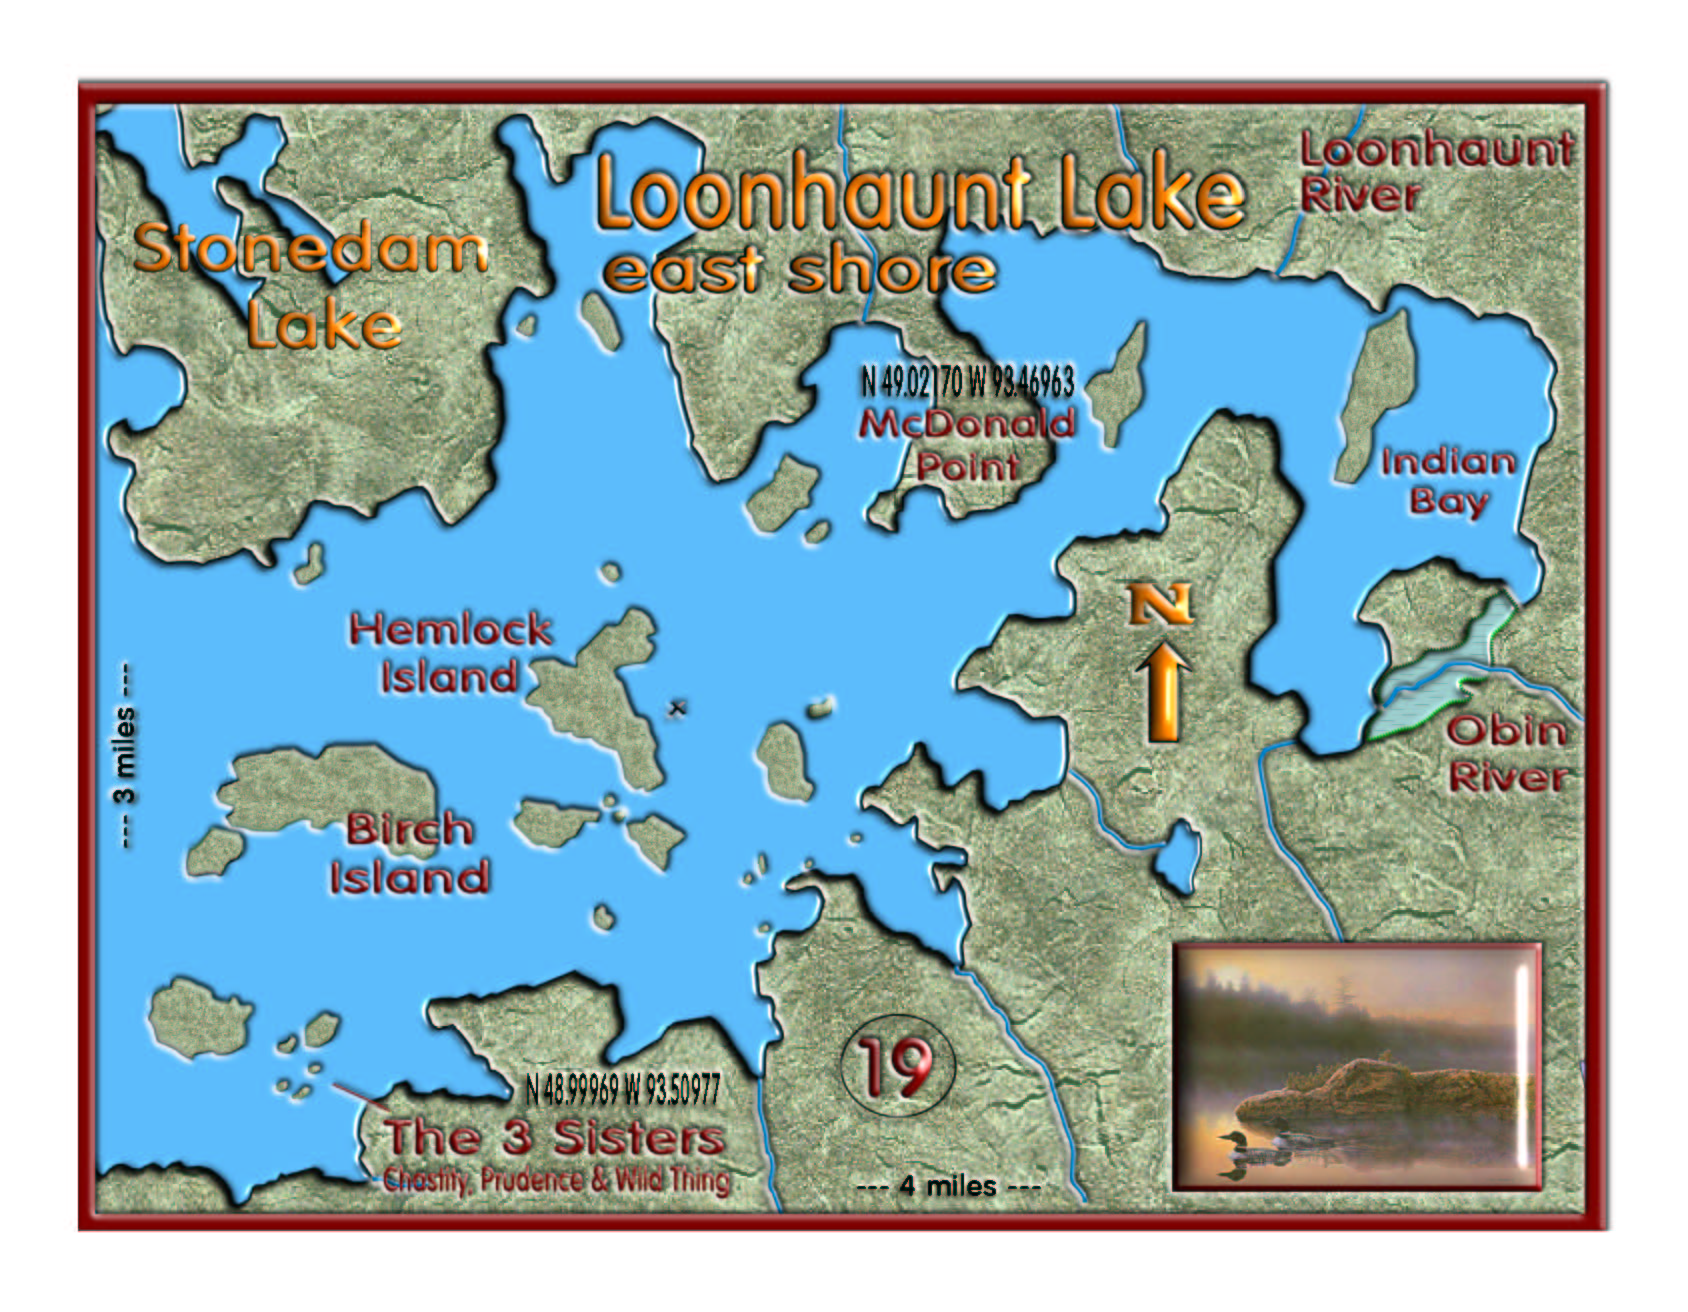 Loonhaunt East Shore map